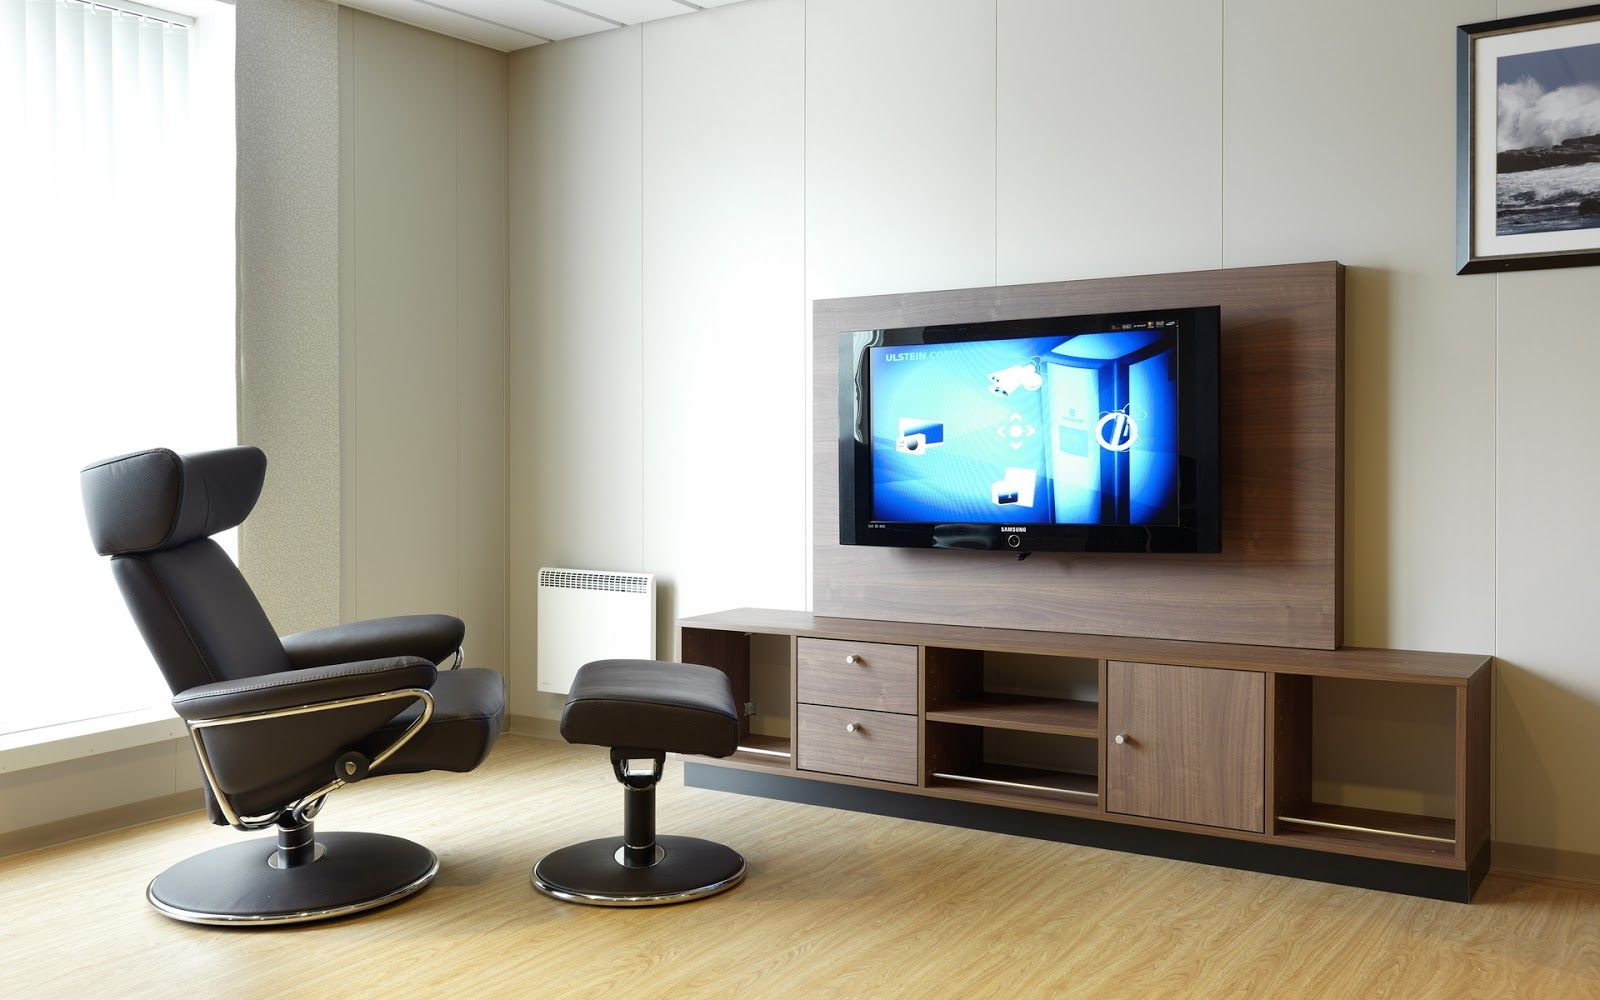 Stunning TV Room Interior Design 1600 x 1000 · 198 kB · jpeg